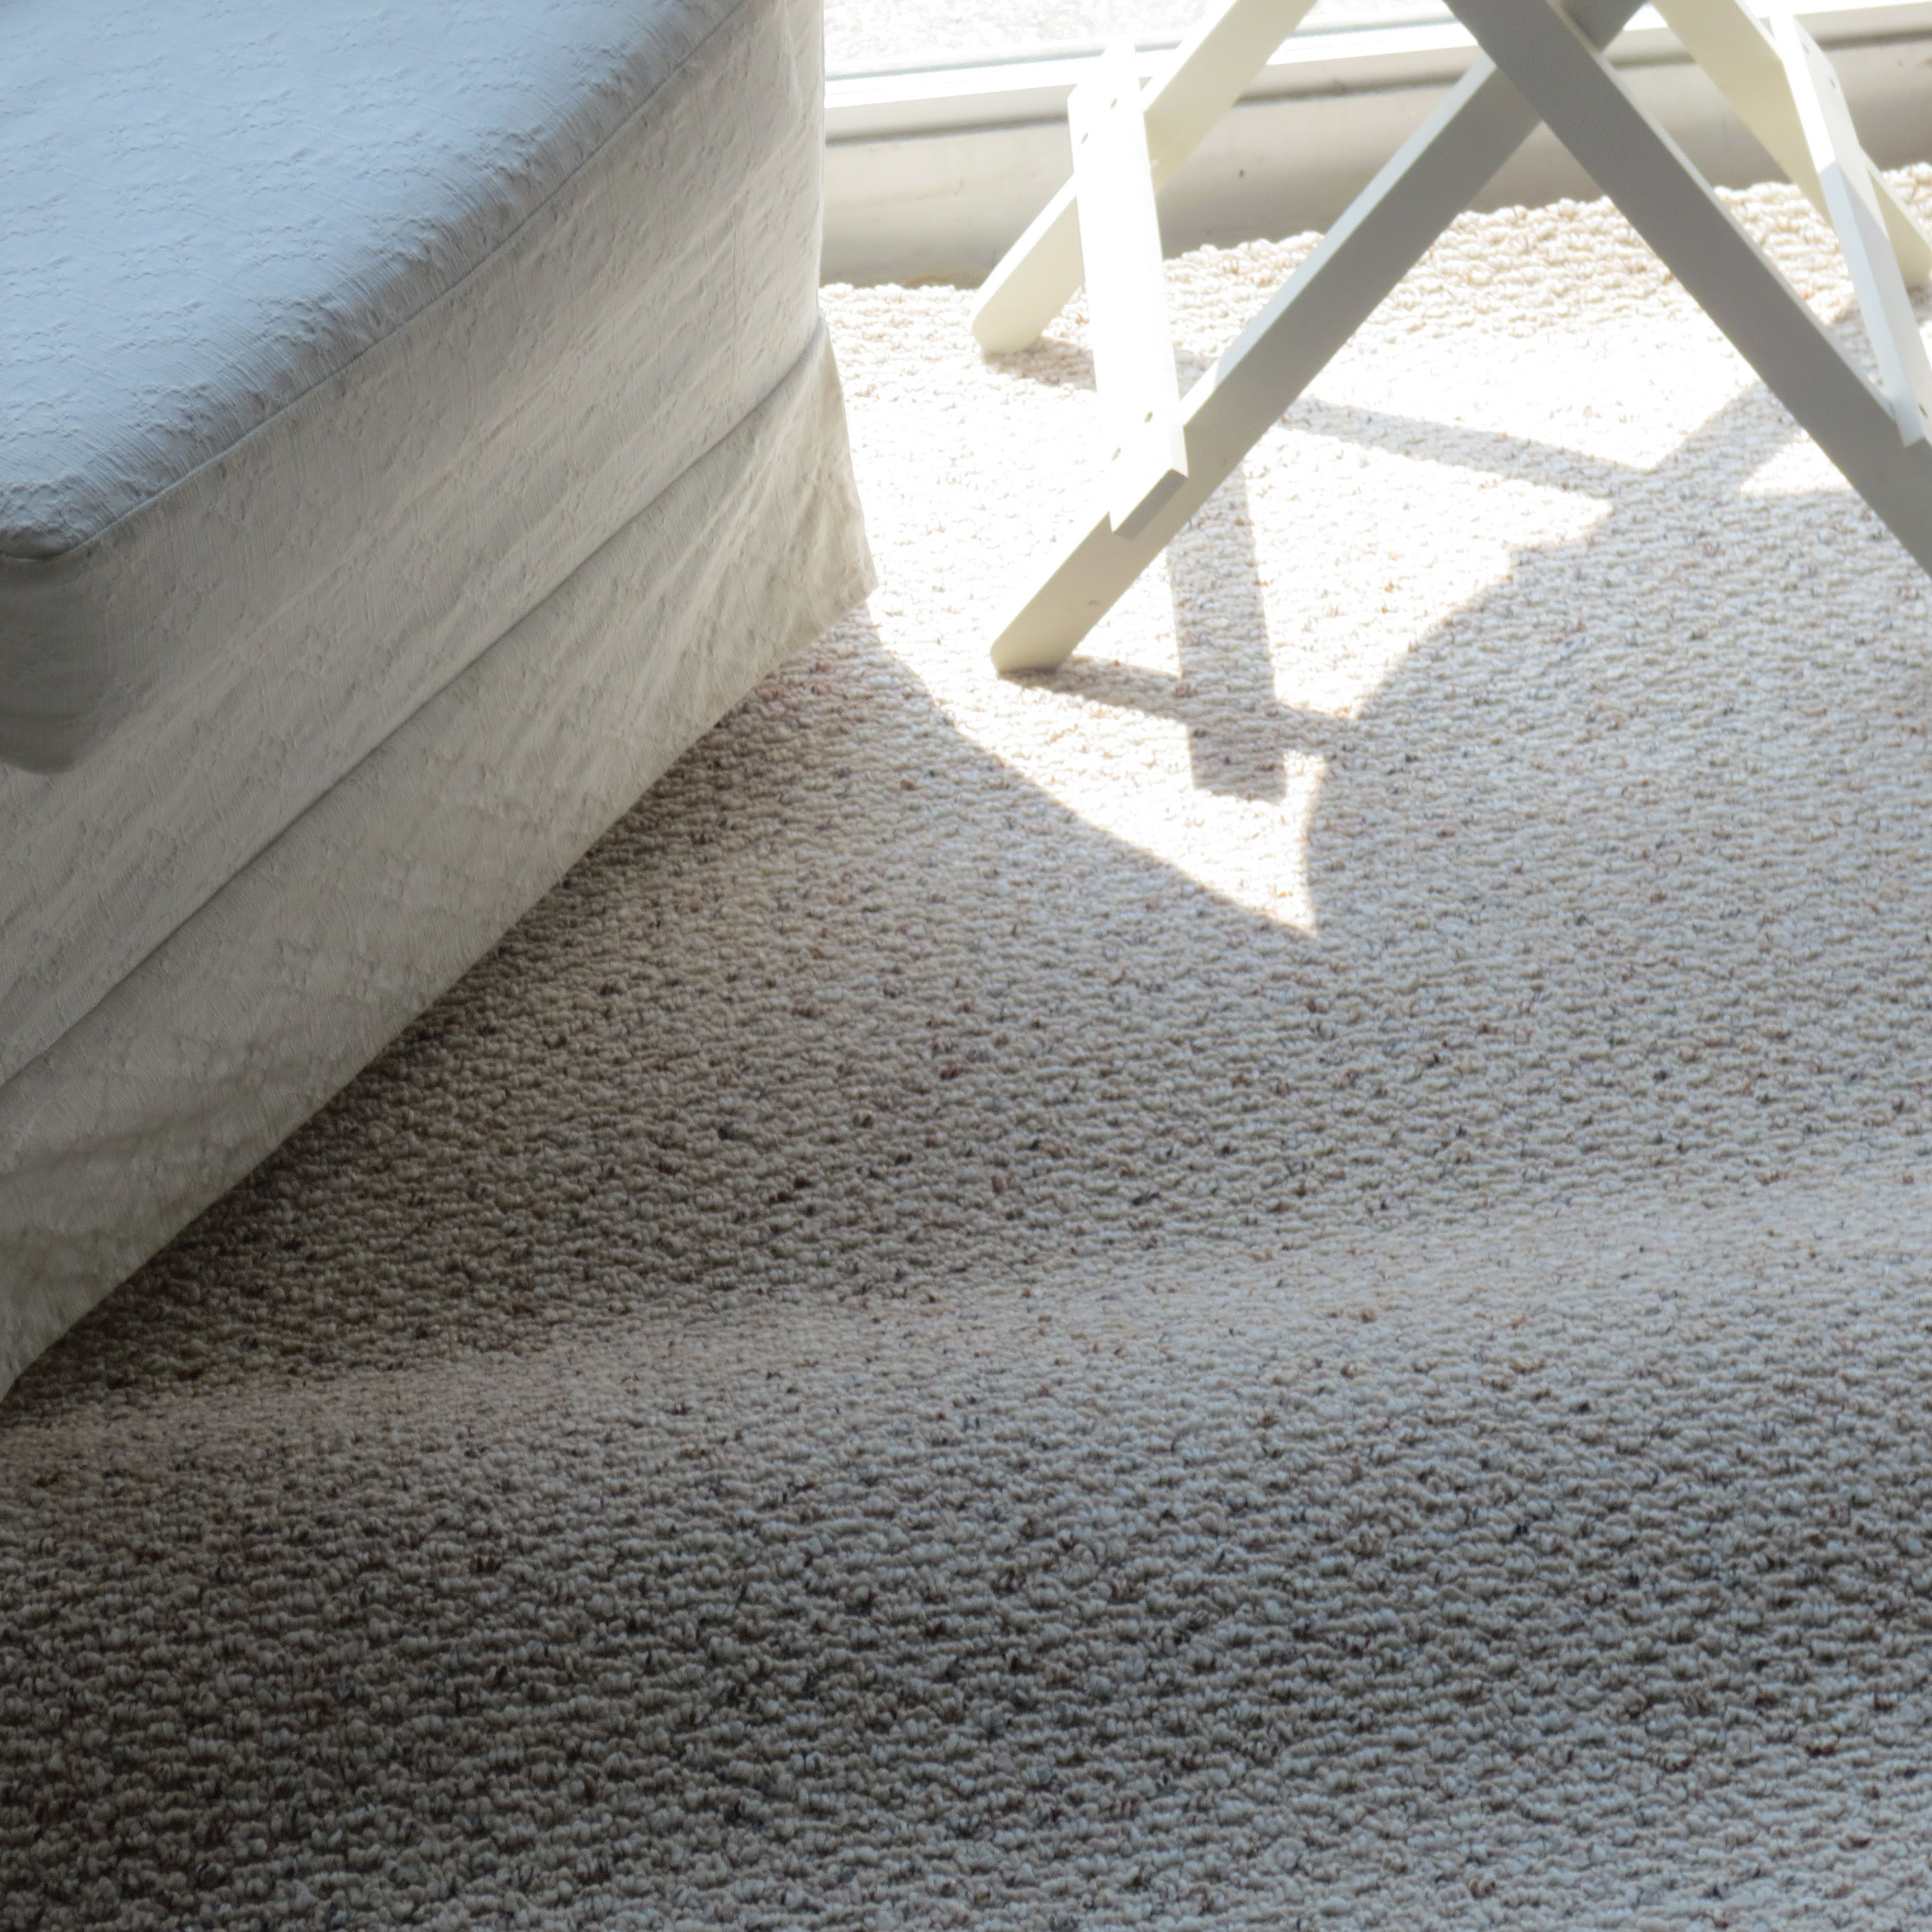 What Causes Carpet to Buckle or Ripple?